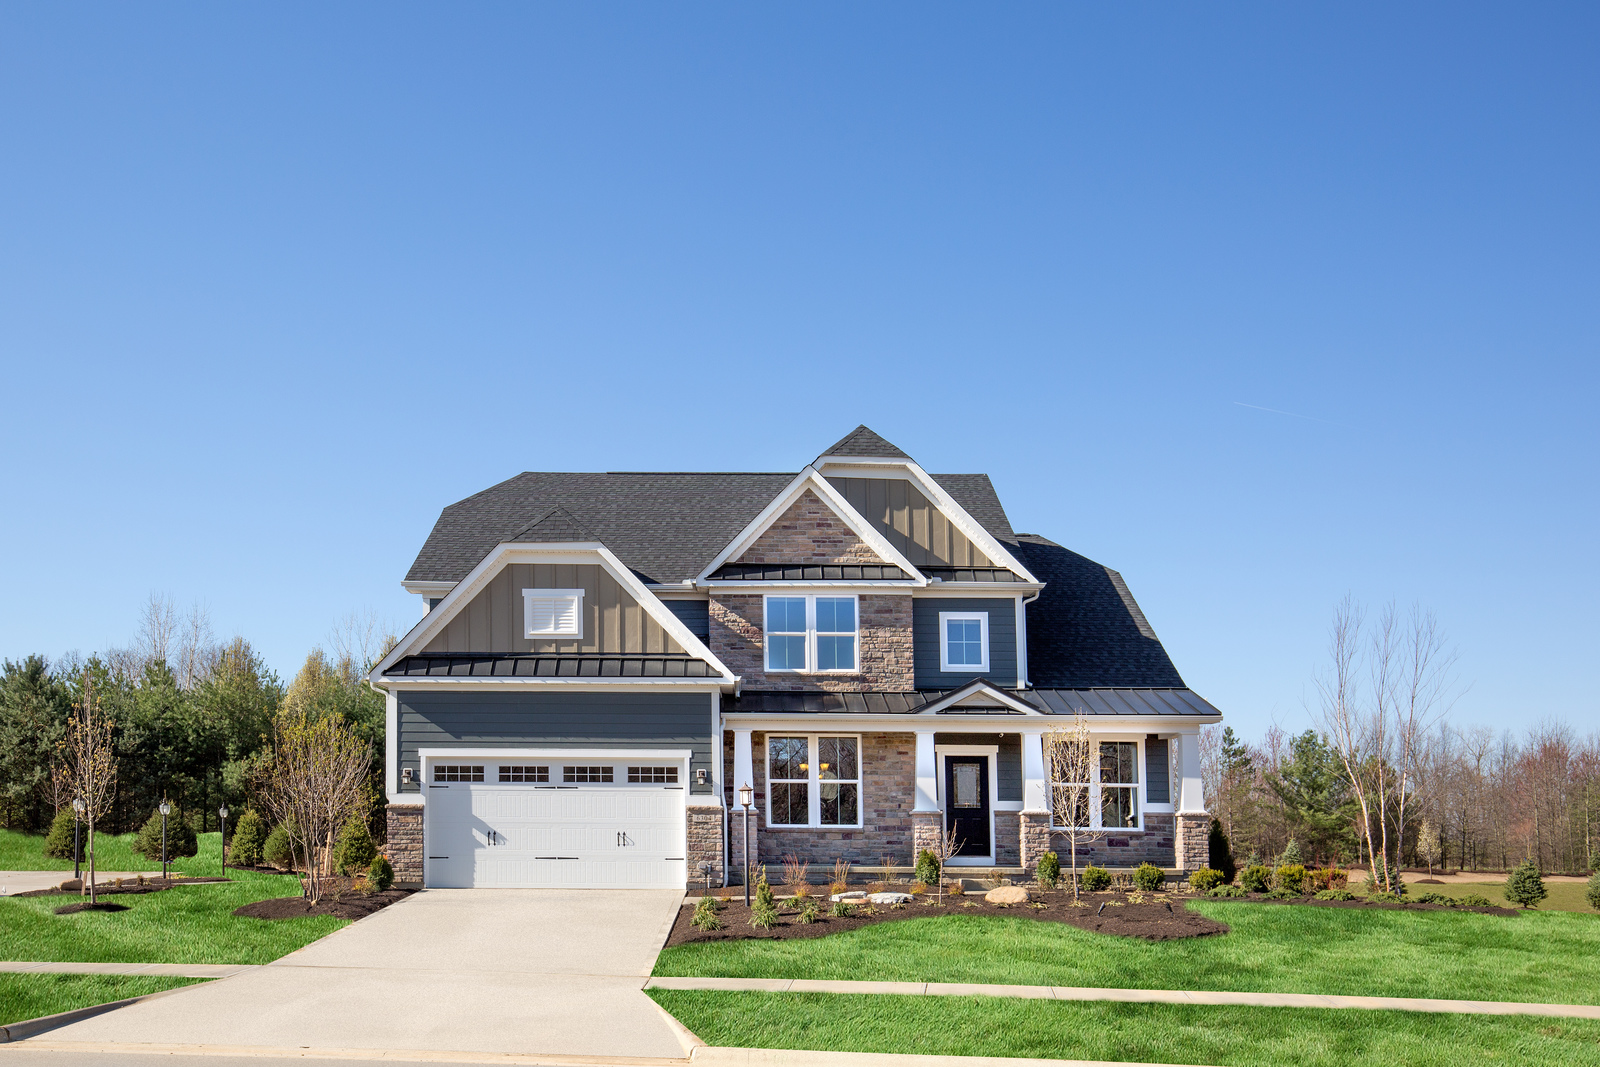 New homes for sale at dover highlands in medina oh within for Ohio homebuilders